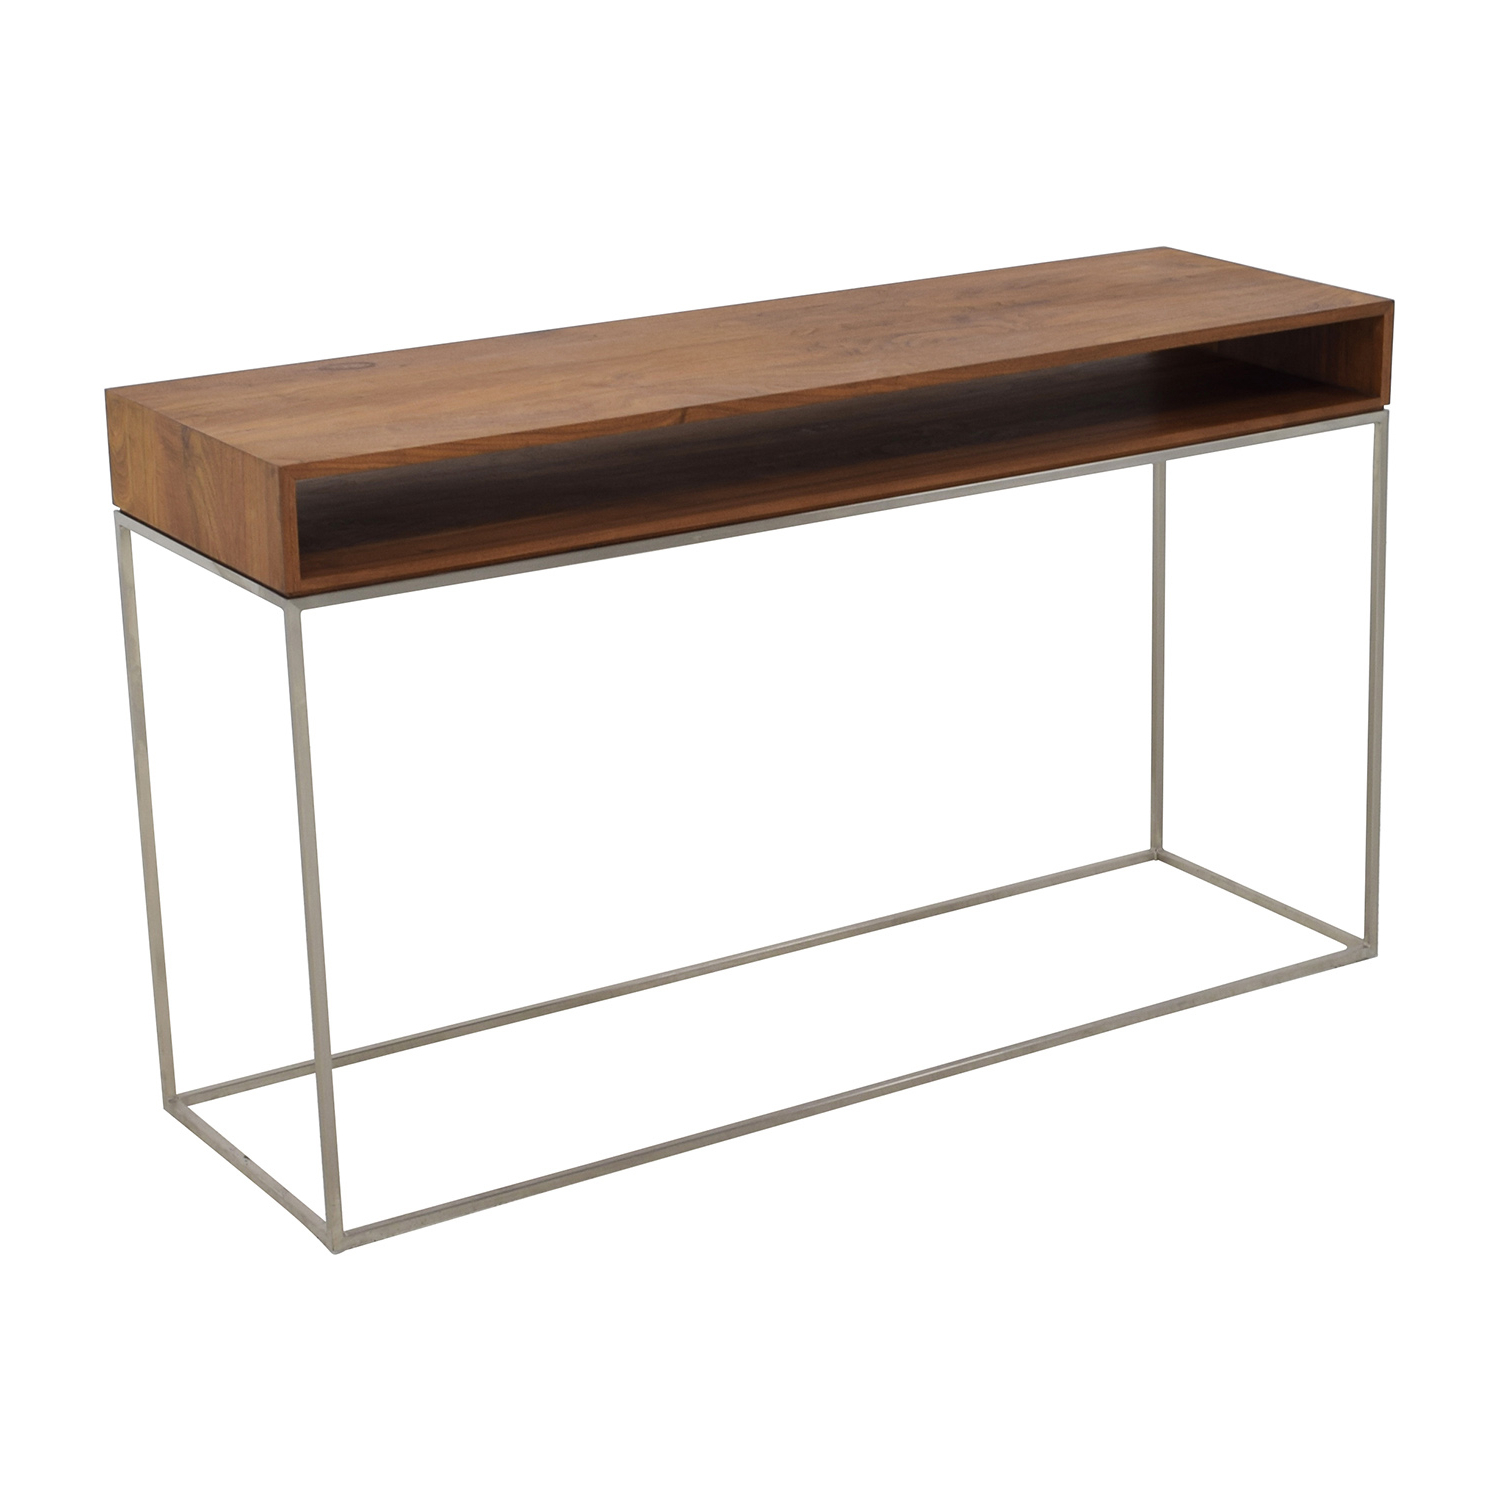 70 Off Cb2 Cb2 Wood And Metal Frame Console Table Tables Tall Narrow Pertaining To Fashionable Frame Console Tables (View 2 of 20)